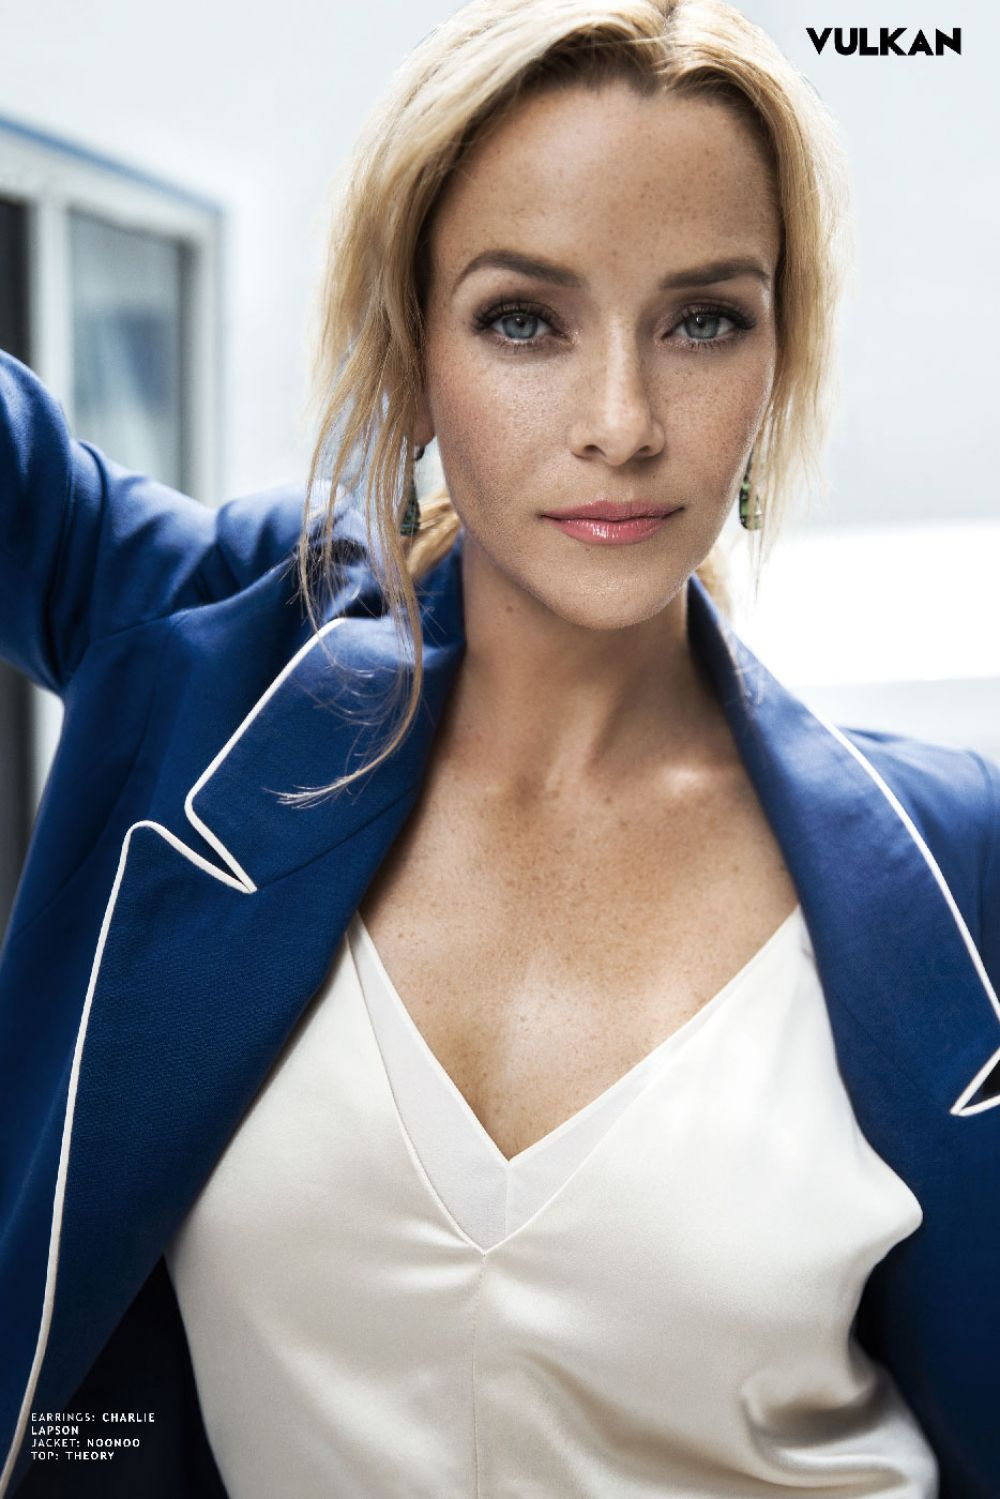 annie wersching - photo #29